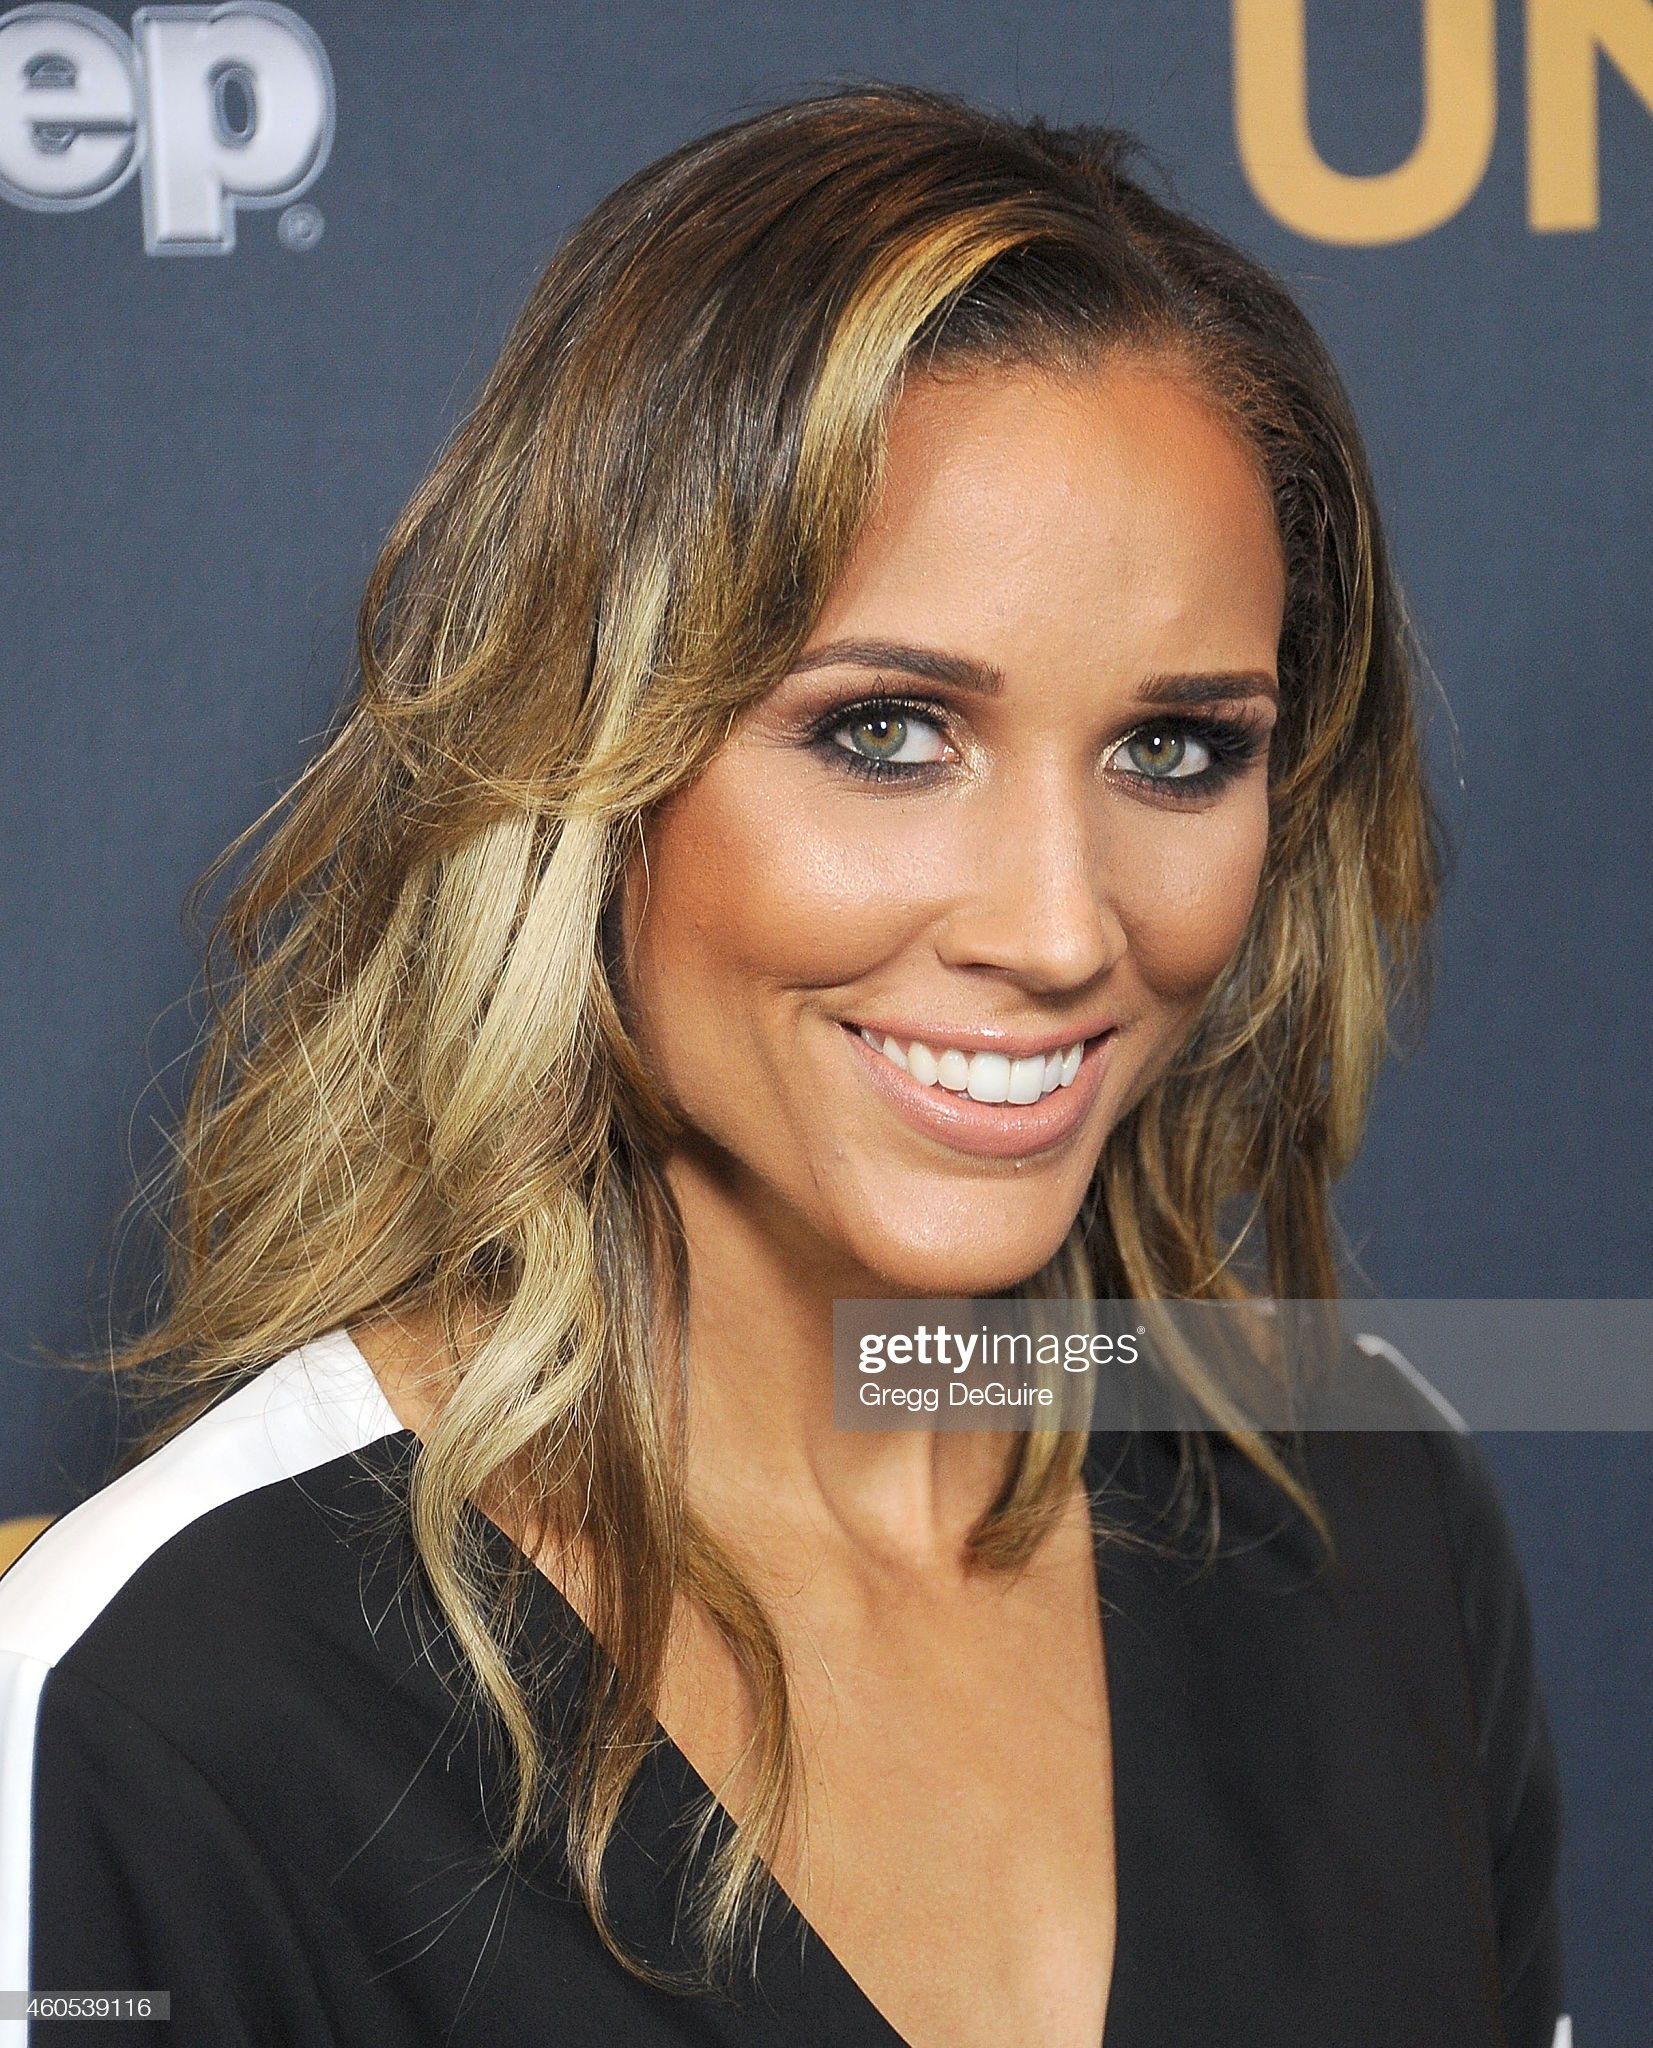 COLOR DE OJOS (clasificación y debate de personas famosas) Lolo-jones-arrives-at-the-los-angeles-premiere-of-unbroken-at-the-picture-id460539116?s=2048x2048